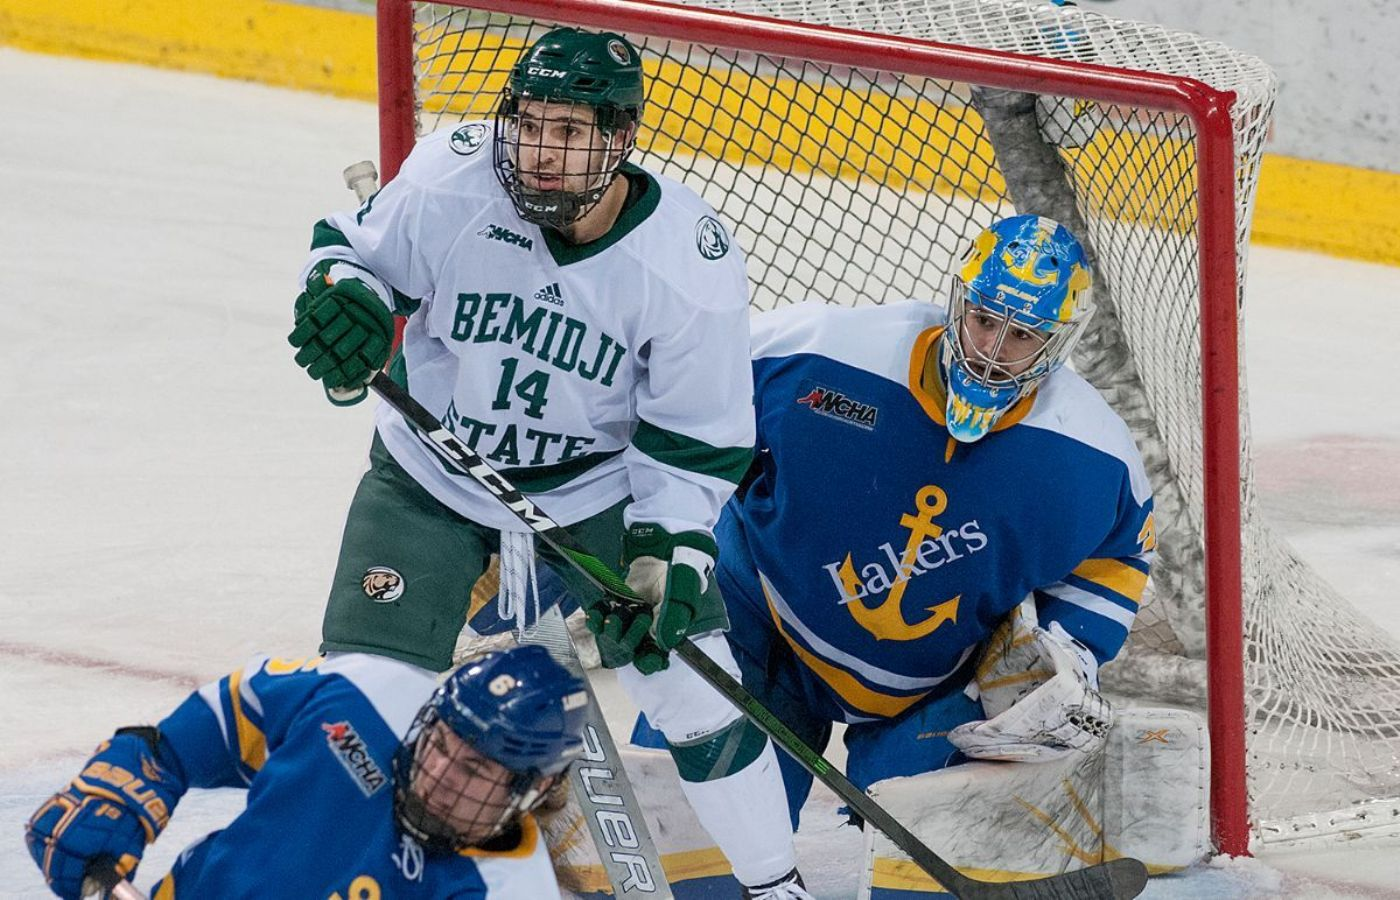 Lakers battle back to secure 2-2 tie